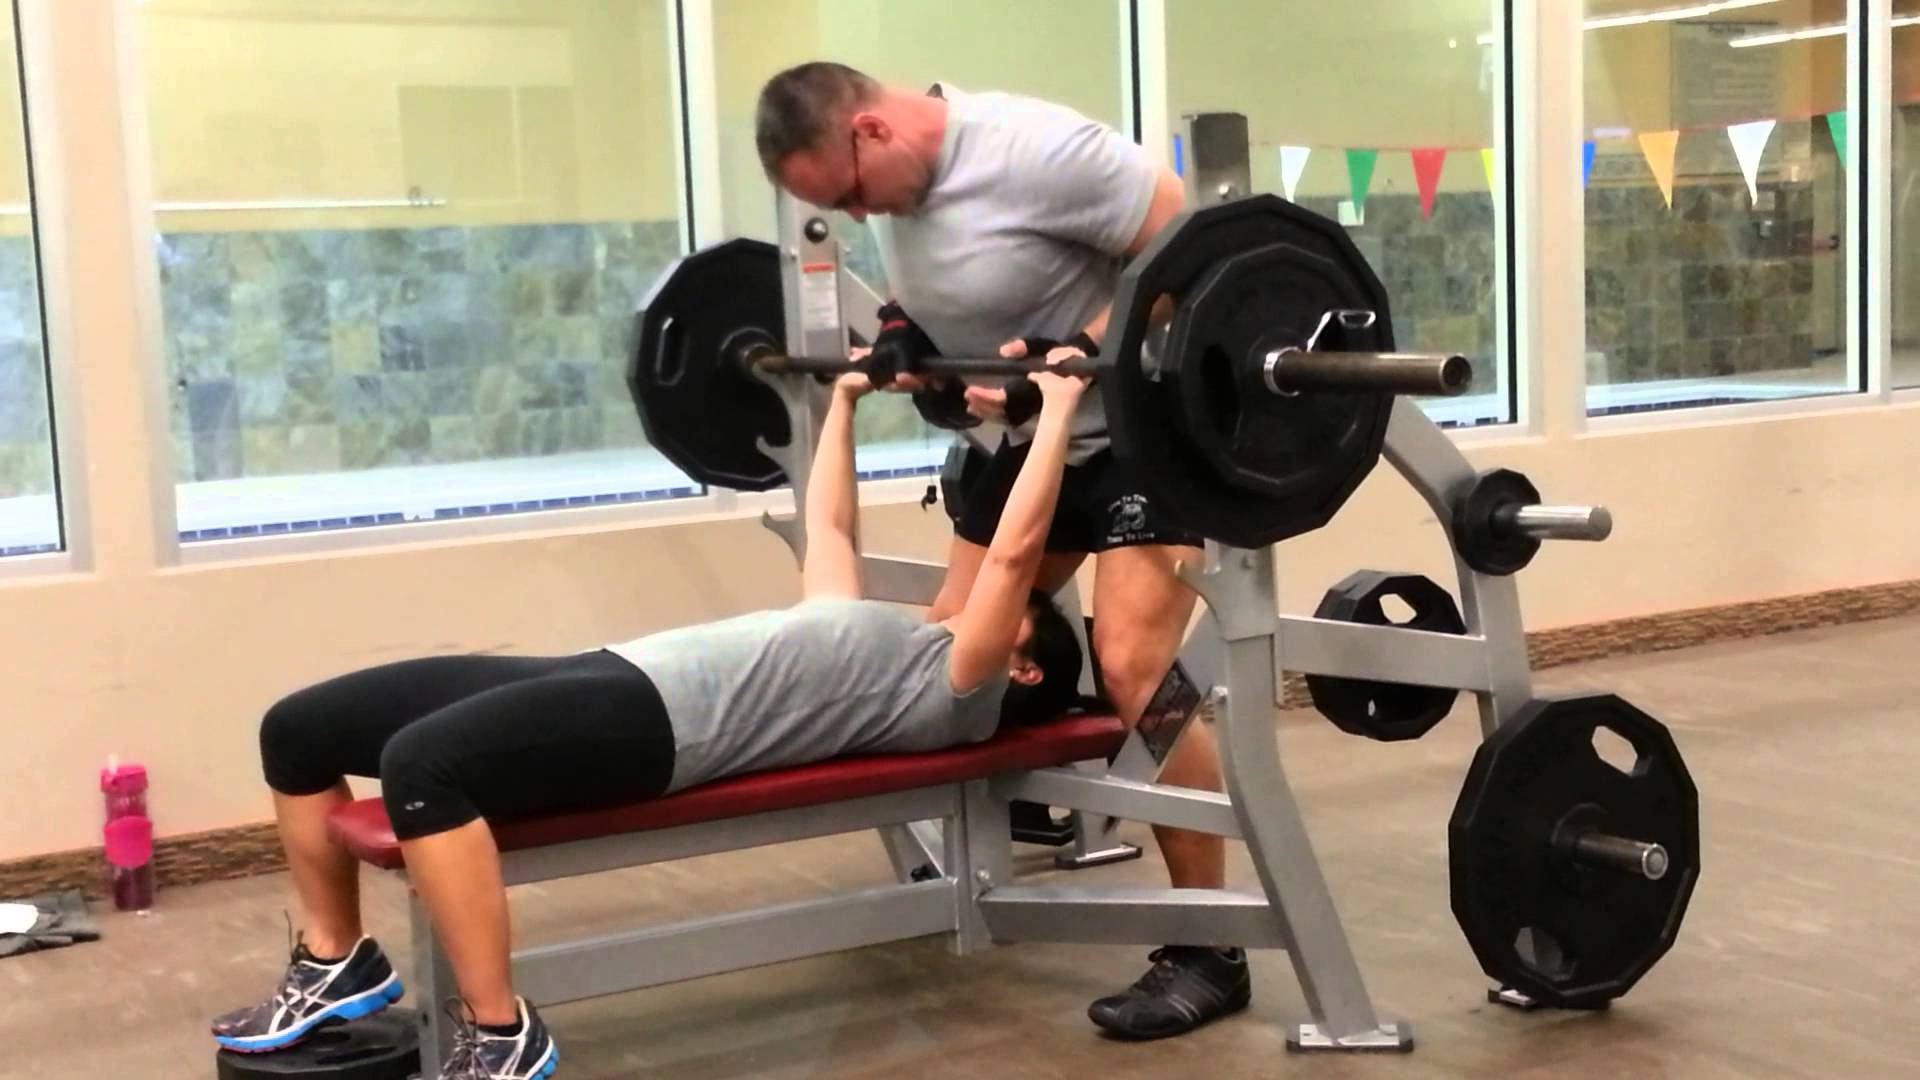 Steph Curry Bench Pressing